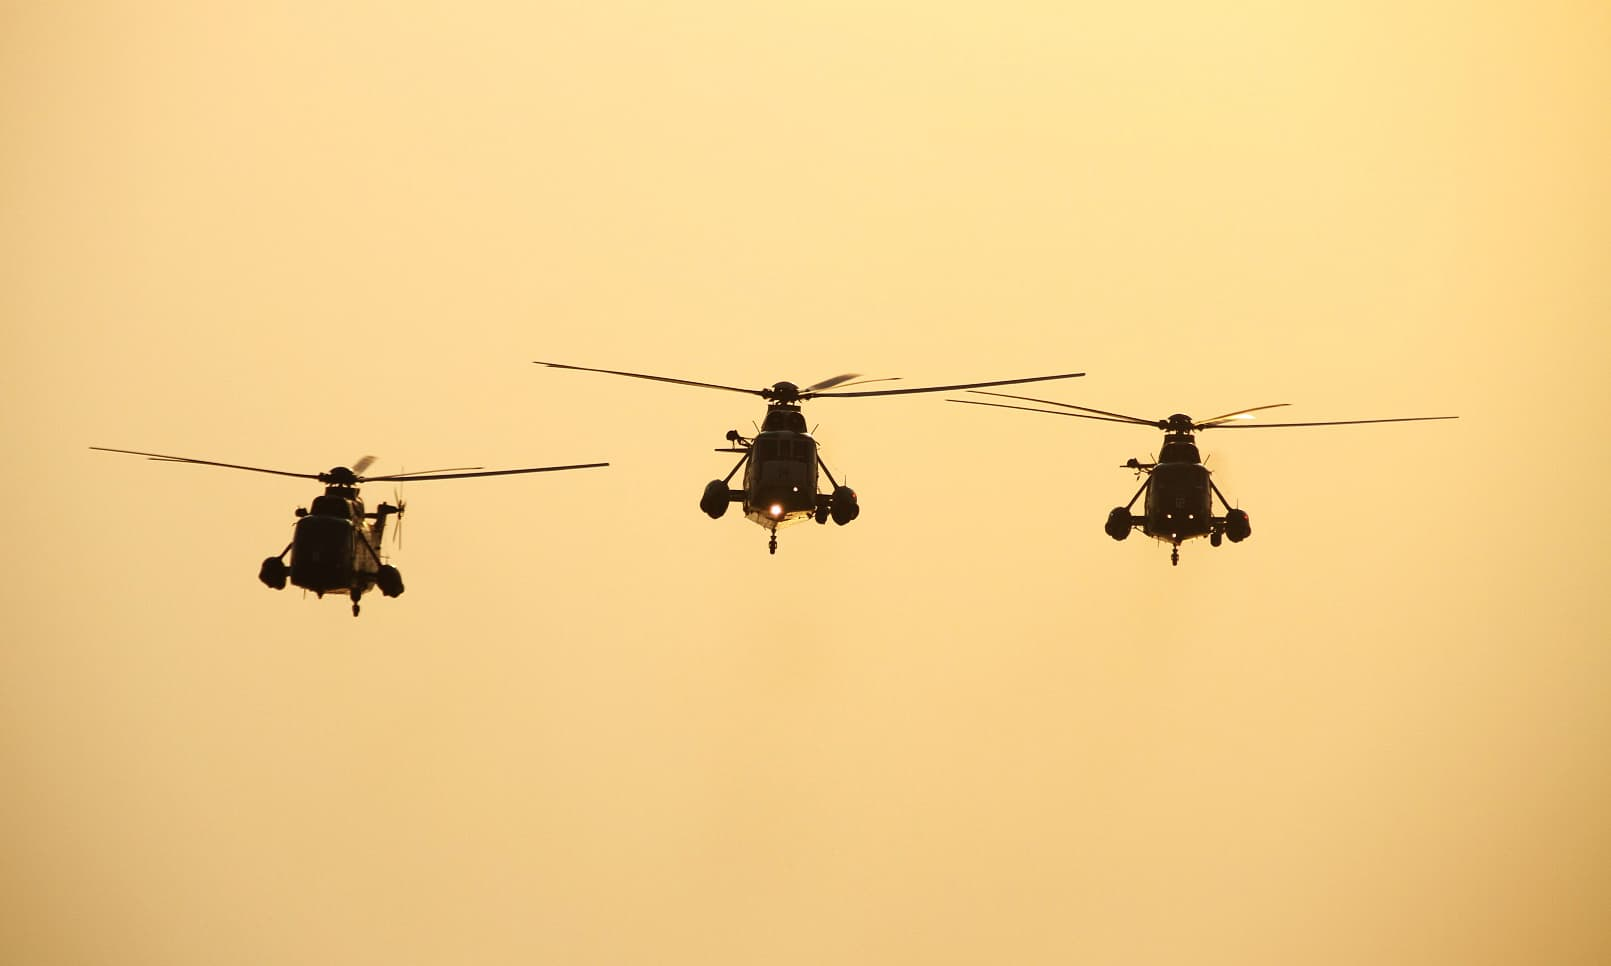 Navy's Sea King helicopters during a flypast at Karachi show held at Sea View. —ISPR